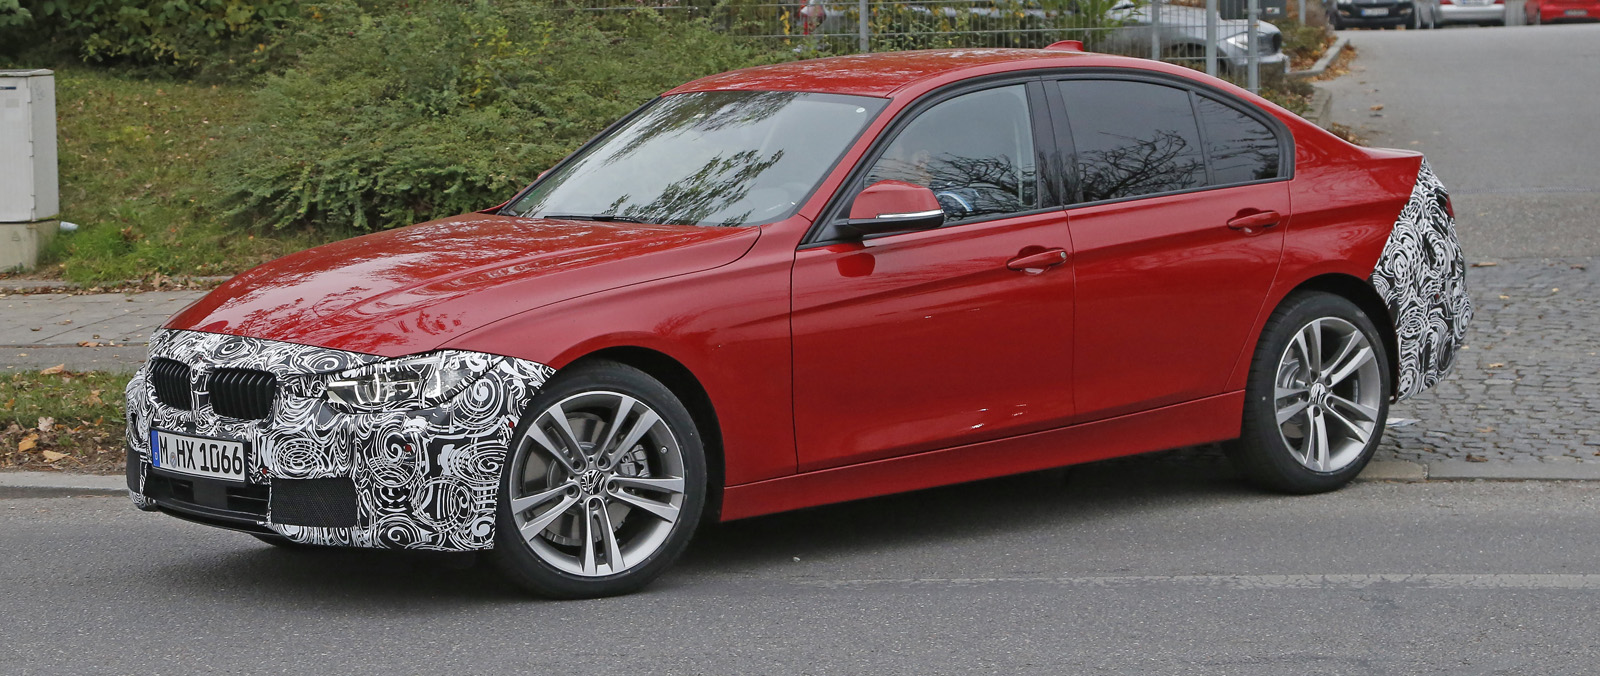 BMW 3 Serie Sedan is betrapt